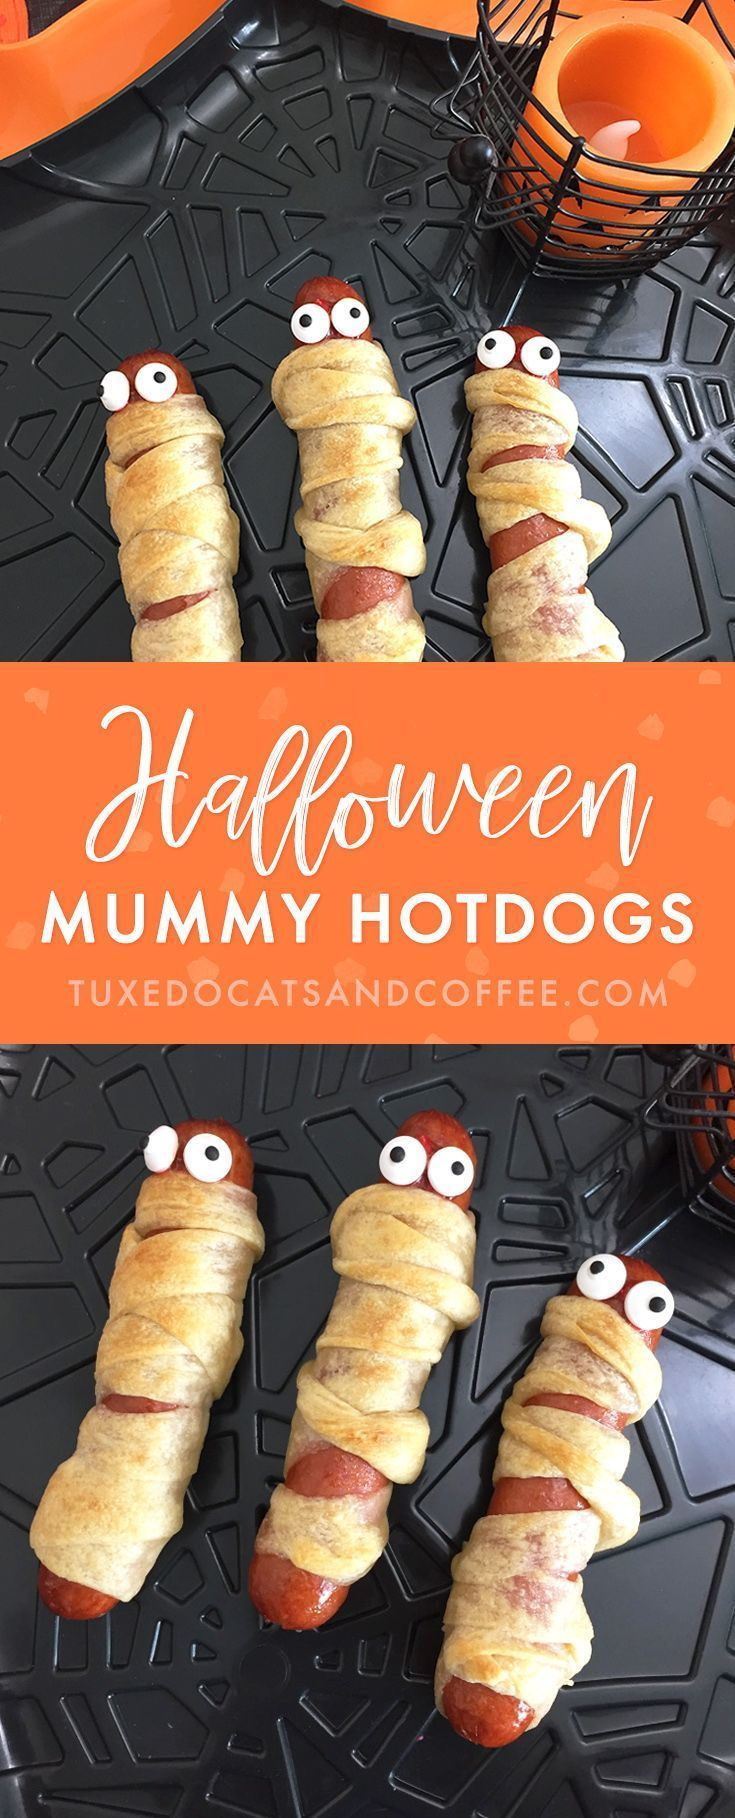 Easy Halloween Party Snacks #mummyhotdogscrescentrolls These cute Halloween mummy hotdogs are super easy to make and they're a fun snack or appetizer for a Halloween party! All you need is hotdogs and some crescent roll dough to make these Hallo-weenies. #mummyhotdogscrescentrolls Easy Halloween Party Snacks #mummyhotdogscrescentrolls These cute Halloween mummy hotdogs are super easy to make and they're a fun snack or appetizer for a Halloween party! All you need is hotdogs and some crescent #mummyhotdogscrescentrolls